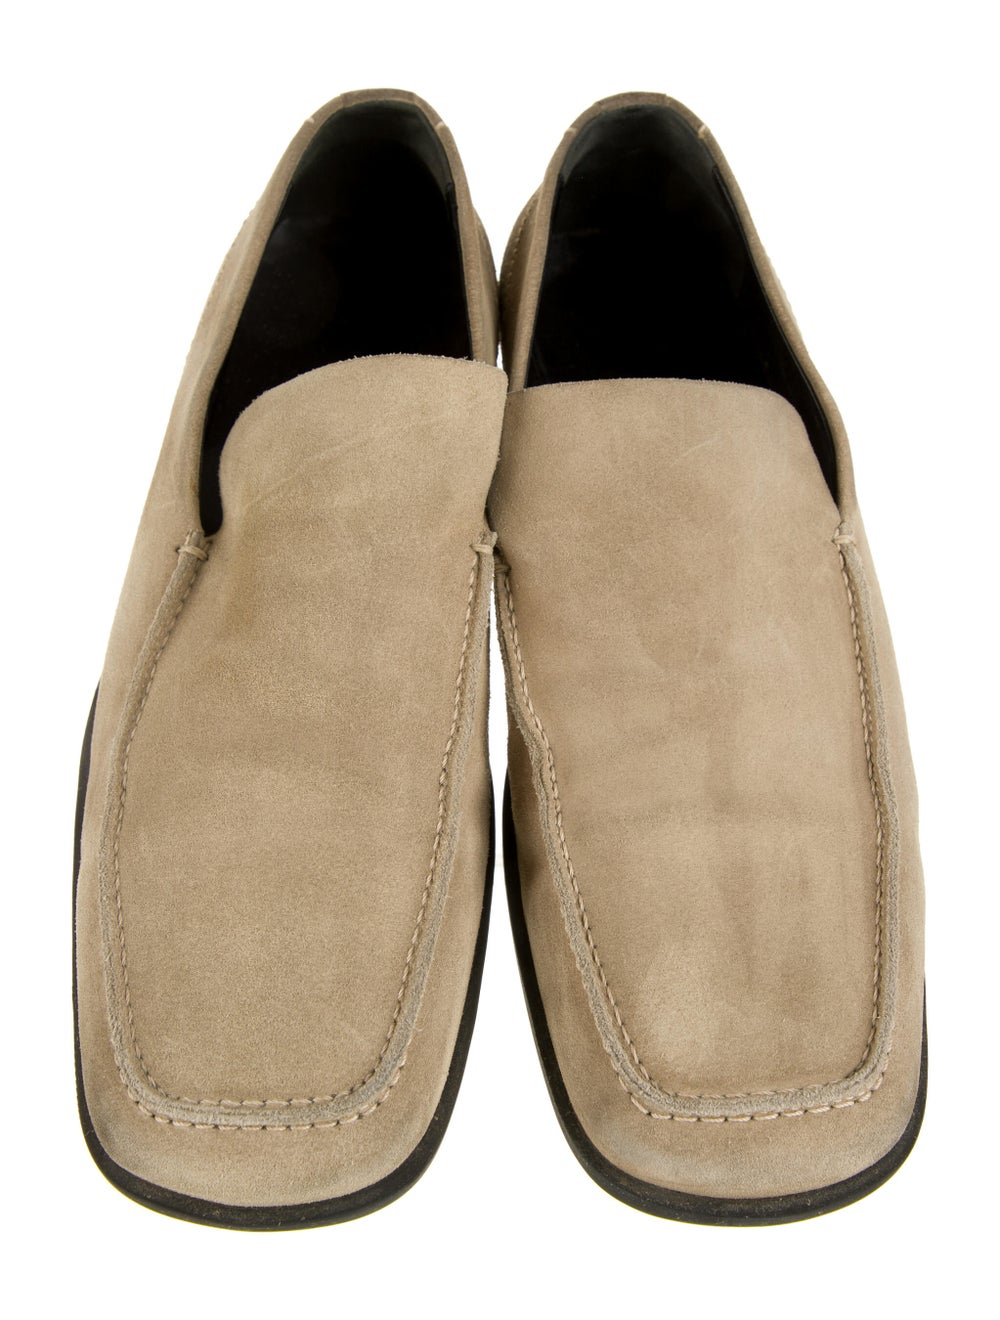 Gucci Suede Dress Loafers - image 3